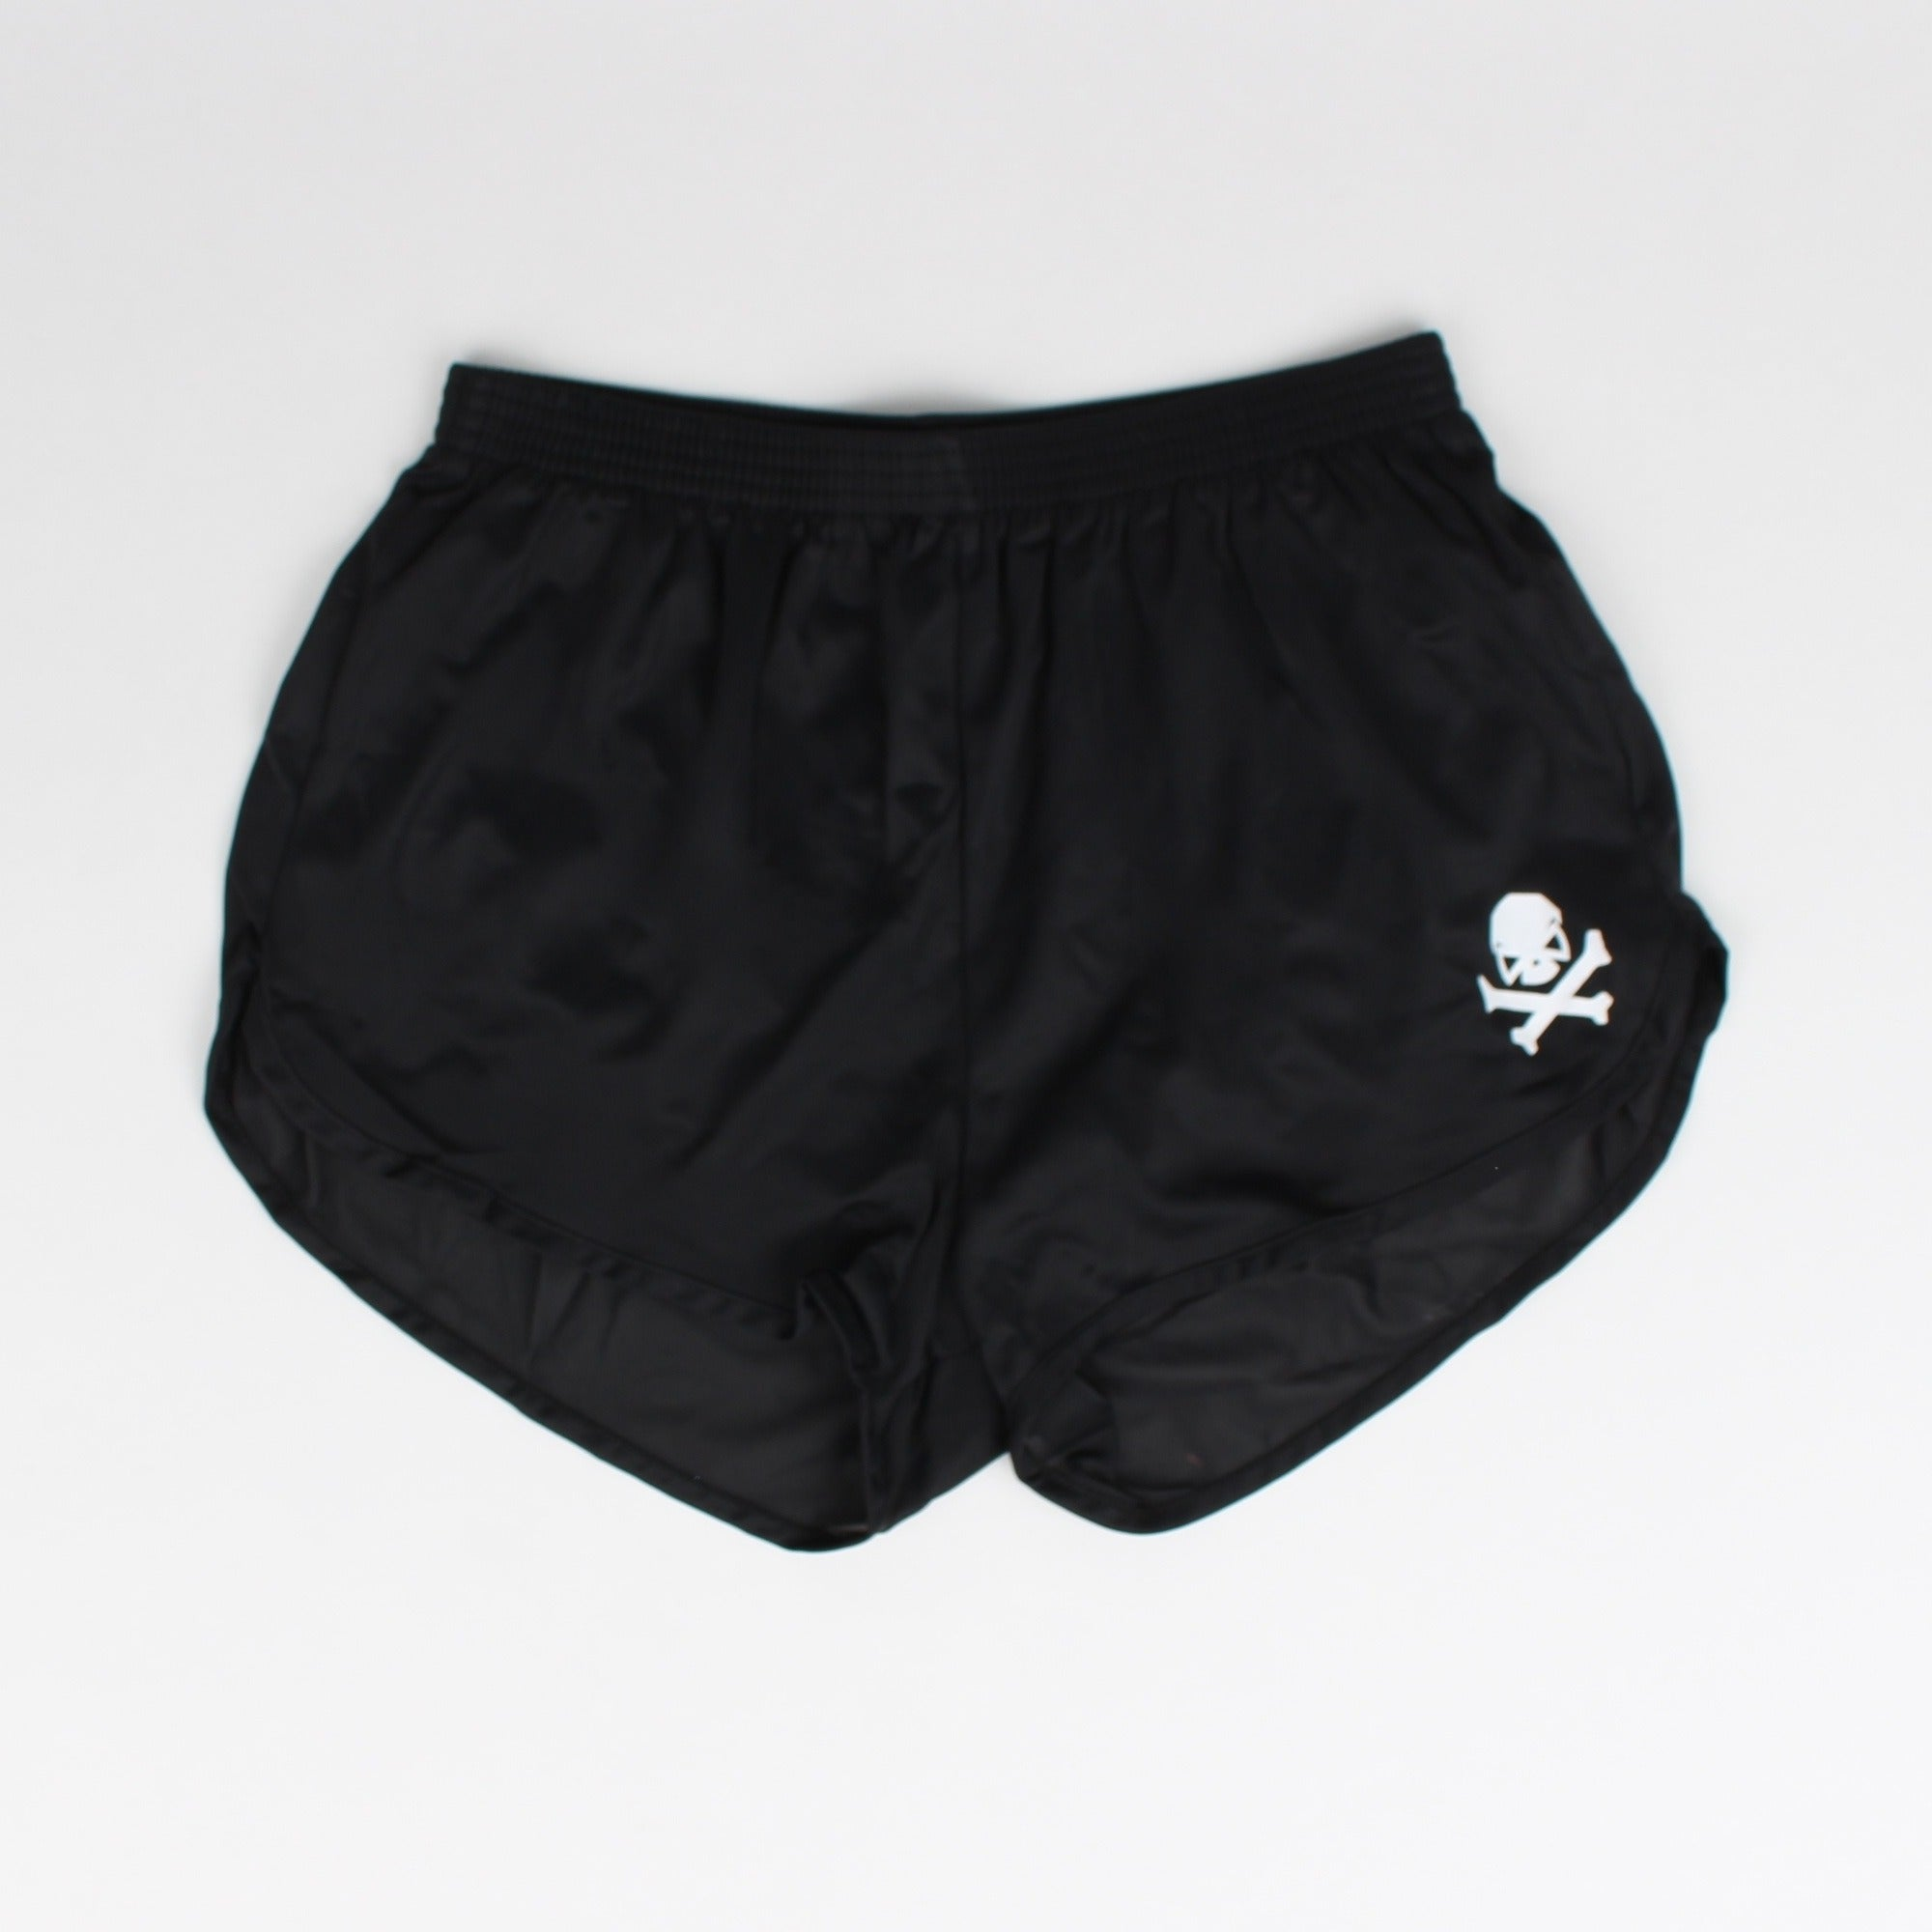 Silkies - Black with White Logo